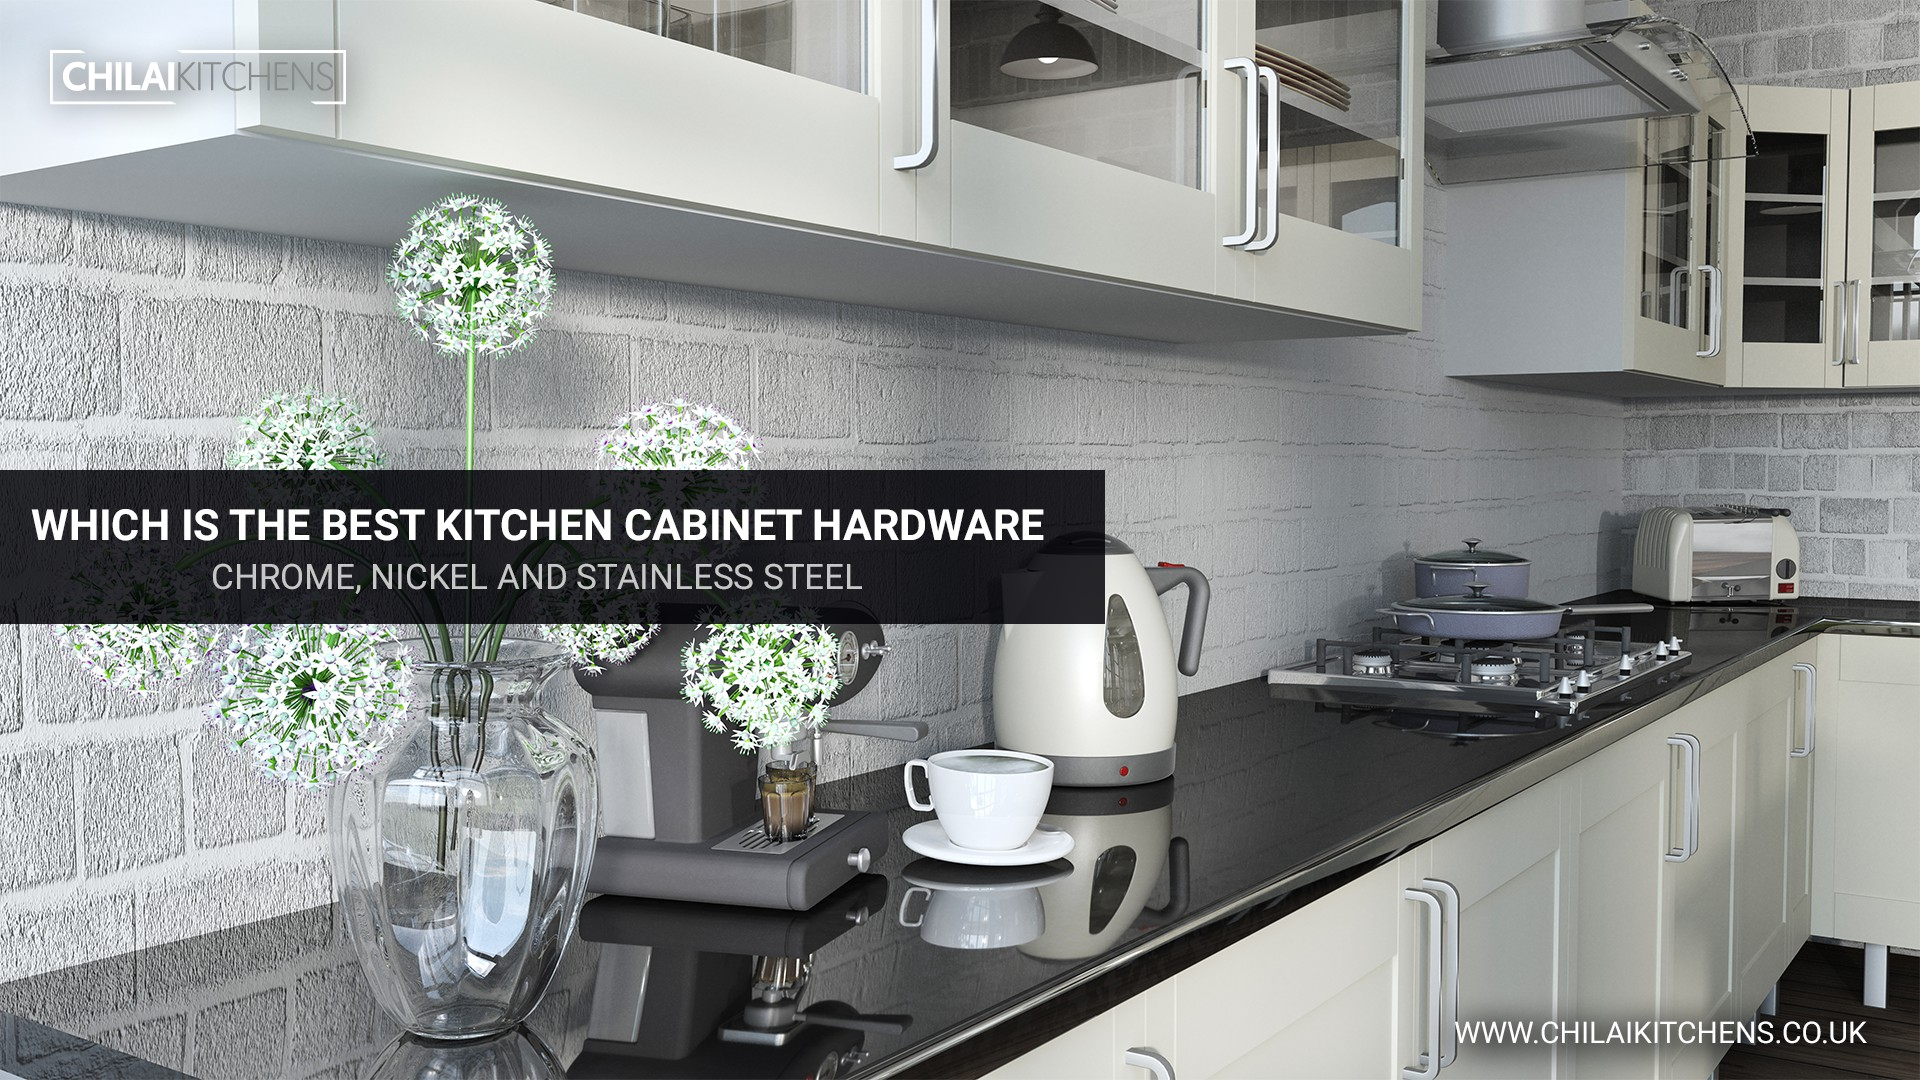 Which Is The Best Kitchen Cabinet Hardware: Chrome, Nickel and Stainless Steel